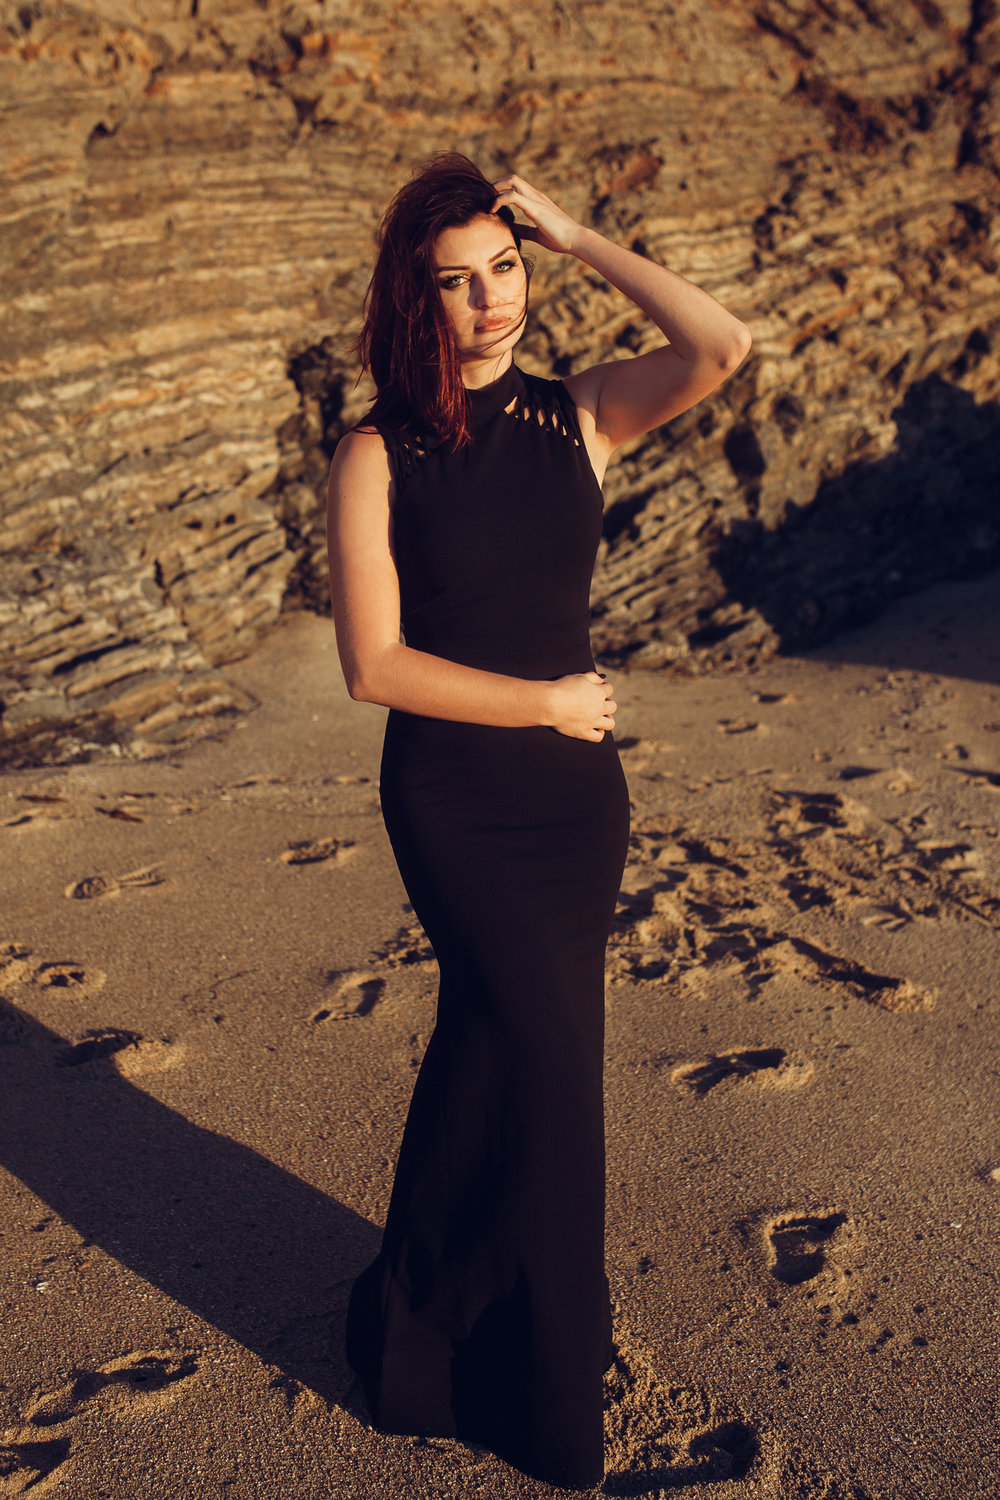 Copy of Vogue Black dress beach shoot